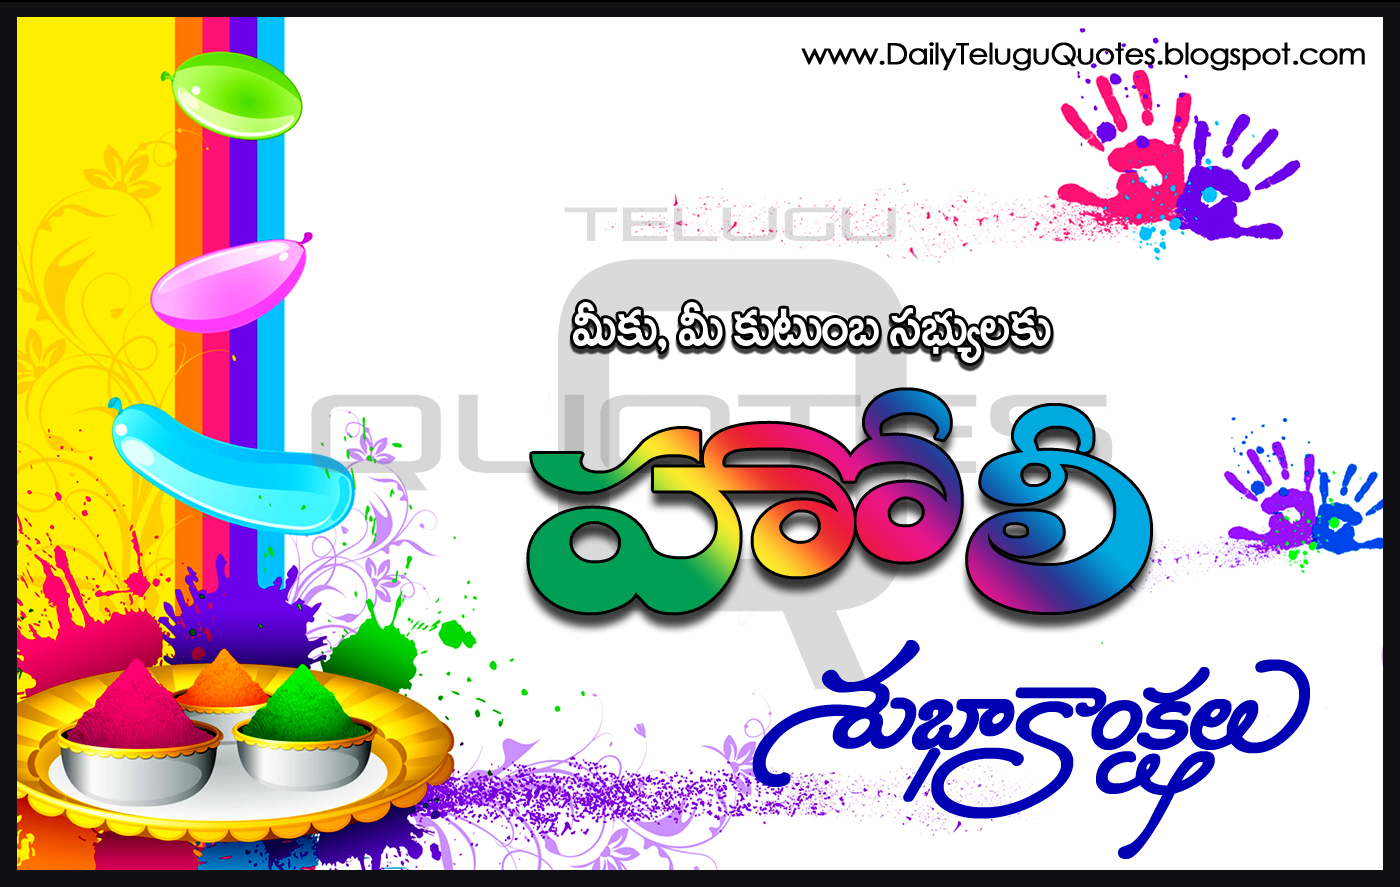 Telugu holi 2017 quotes and wishes hd wallpapers telugu quotations holi wishes in telugu holi hd wallpapers holi kristyandbryce Image collections